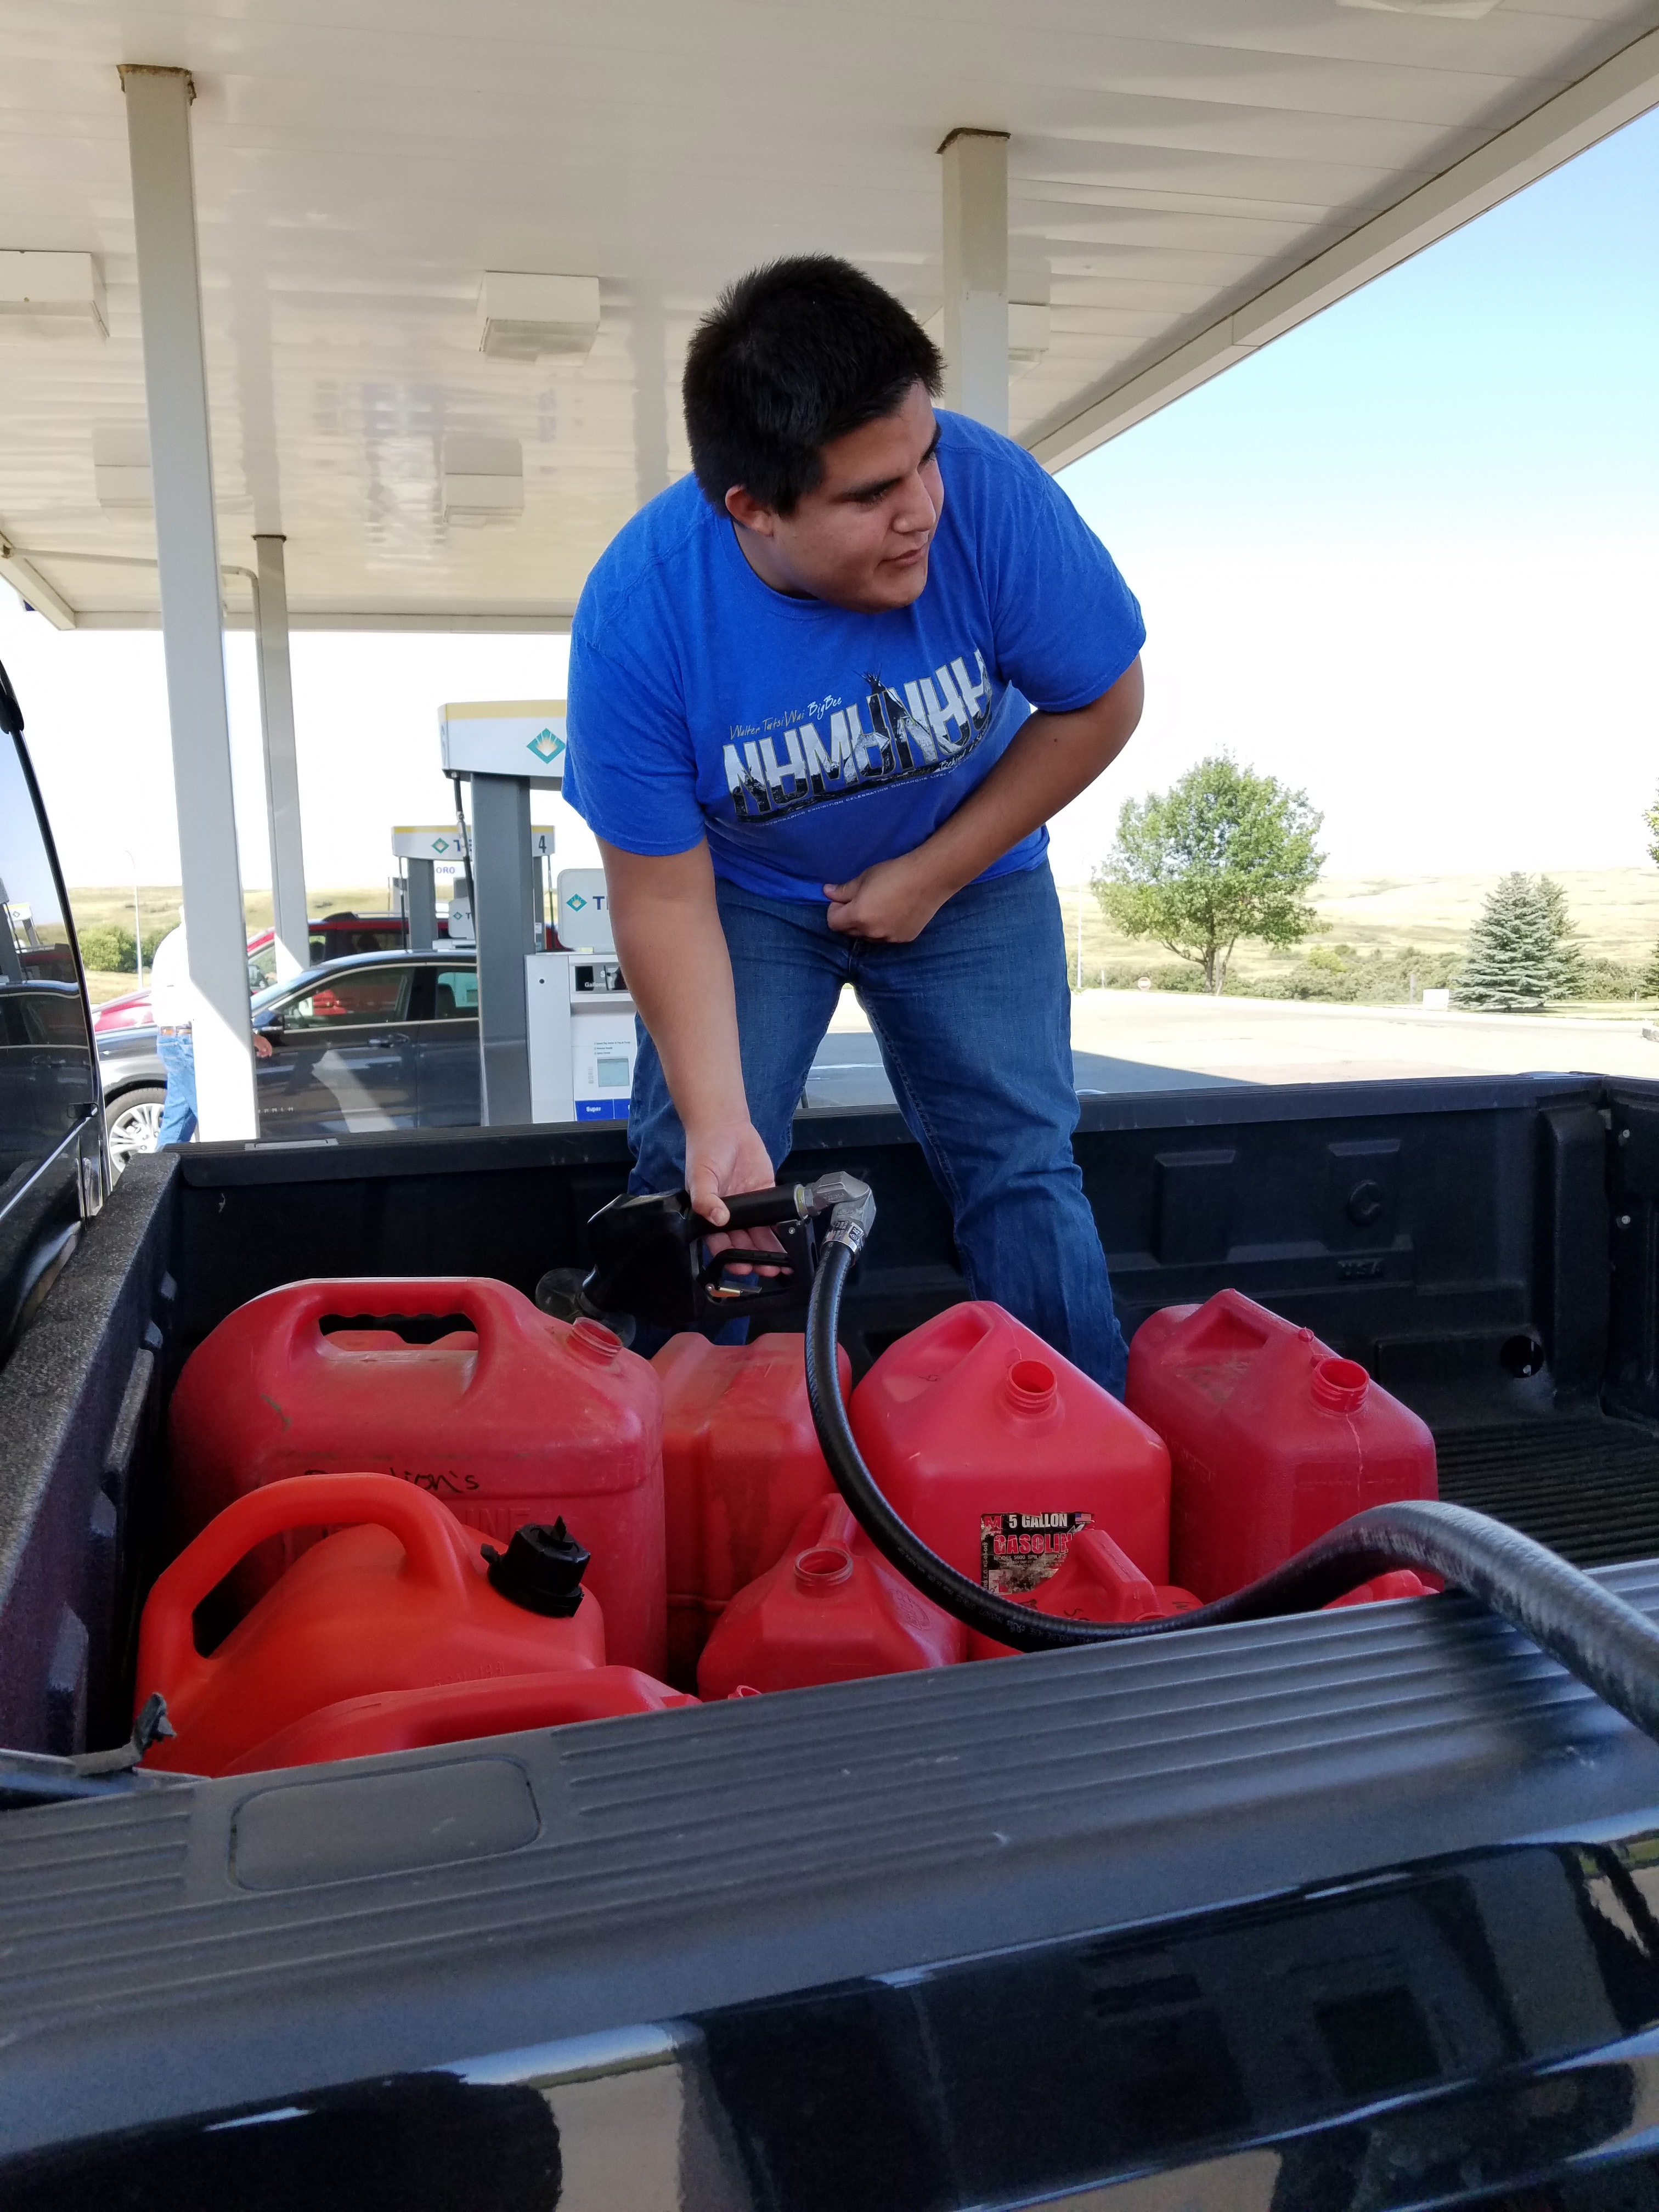 Dallas Parker, member of the Oklahoma Indian Missionary Conference, fills gas containers to run the generators at the Dakota Access Pipeline protest site where hundreds of people have gathered in support of the Standing Rock Sioux Tribe. Photo courtesy of Dallas Parker, Oklahoma Indian Missionary Conference